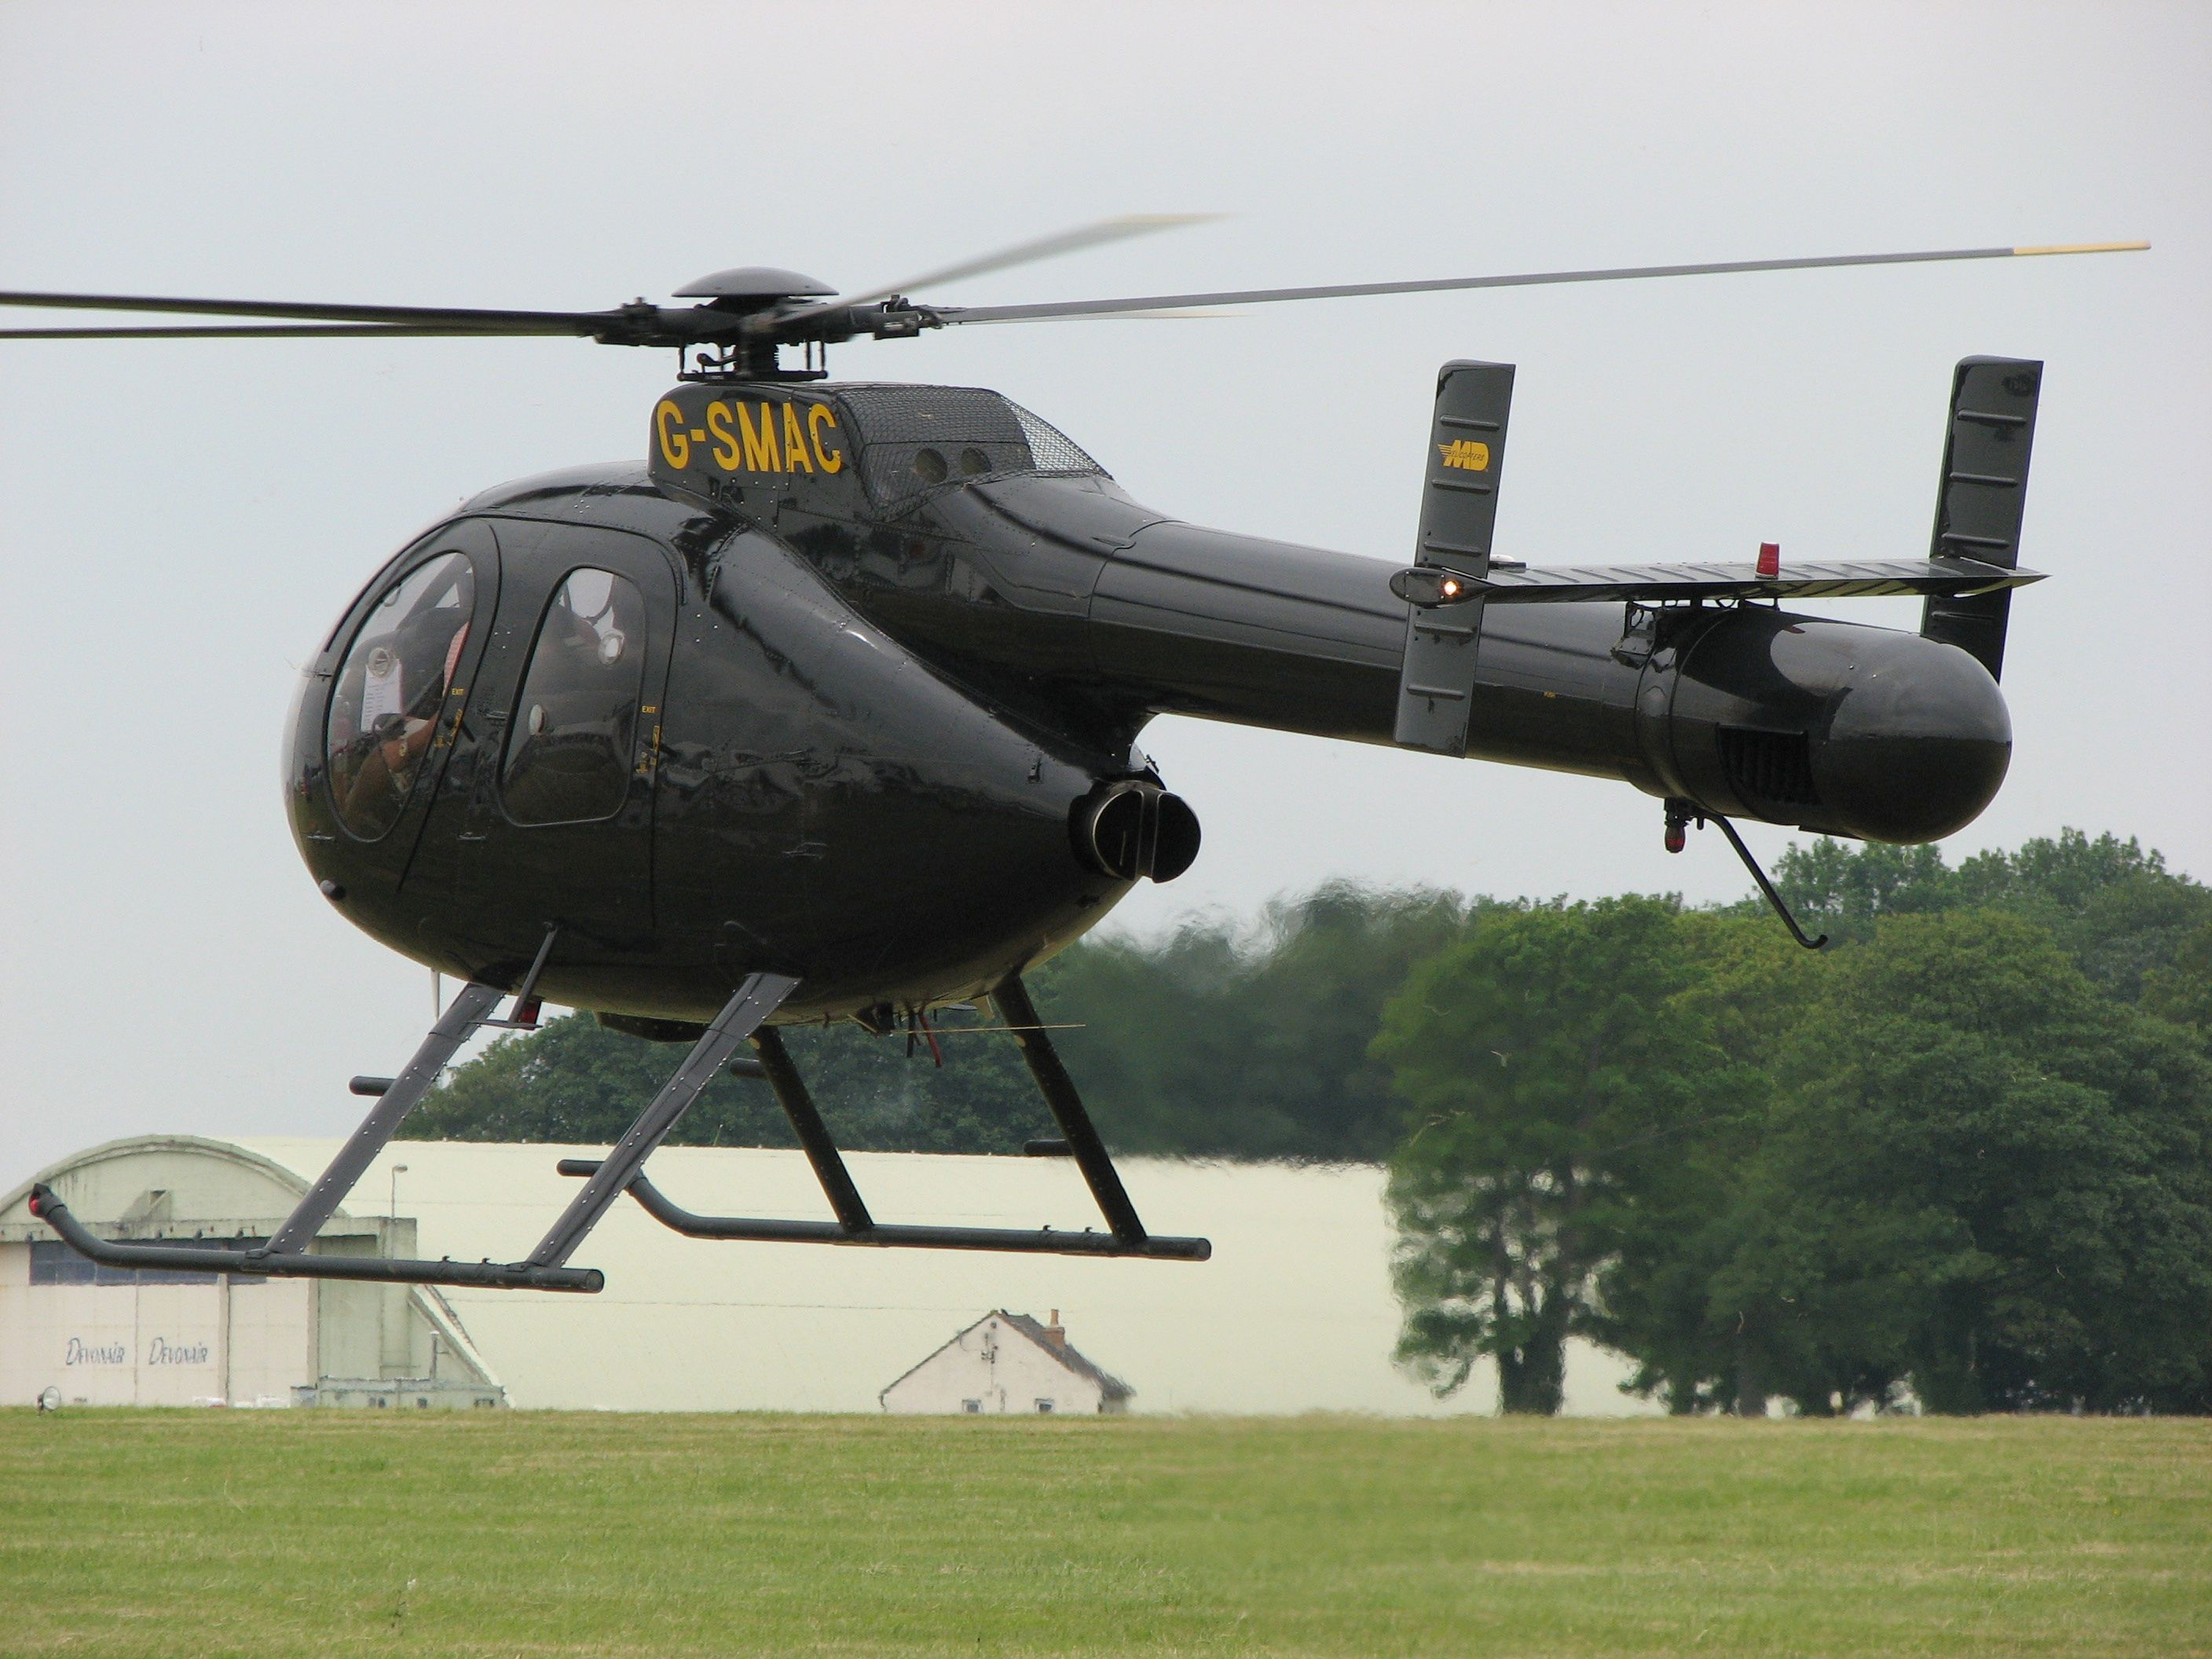 A notar md 520n md 520n introduced a revolutionary advance in helicopter design dispensing with